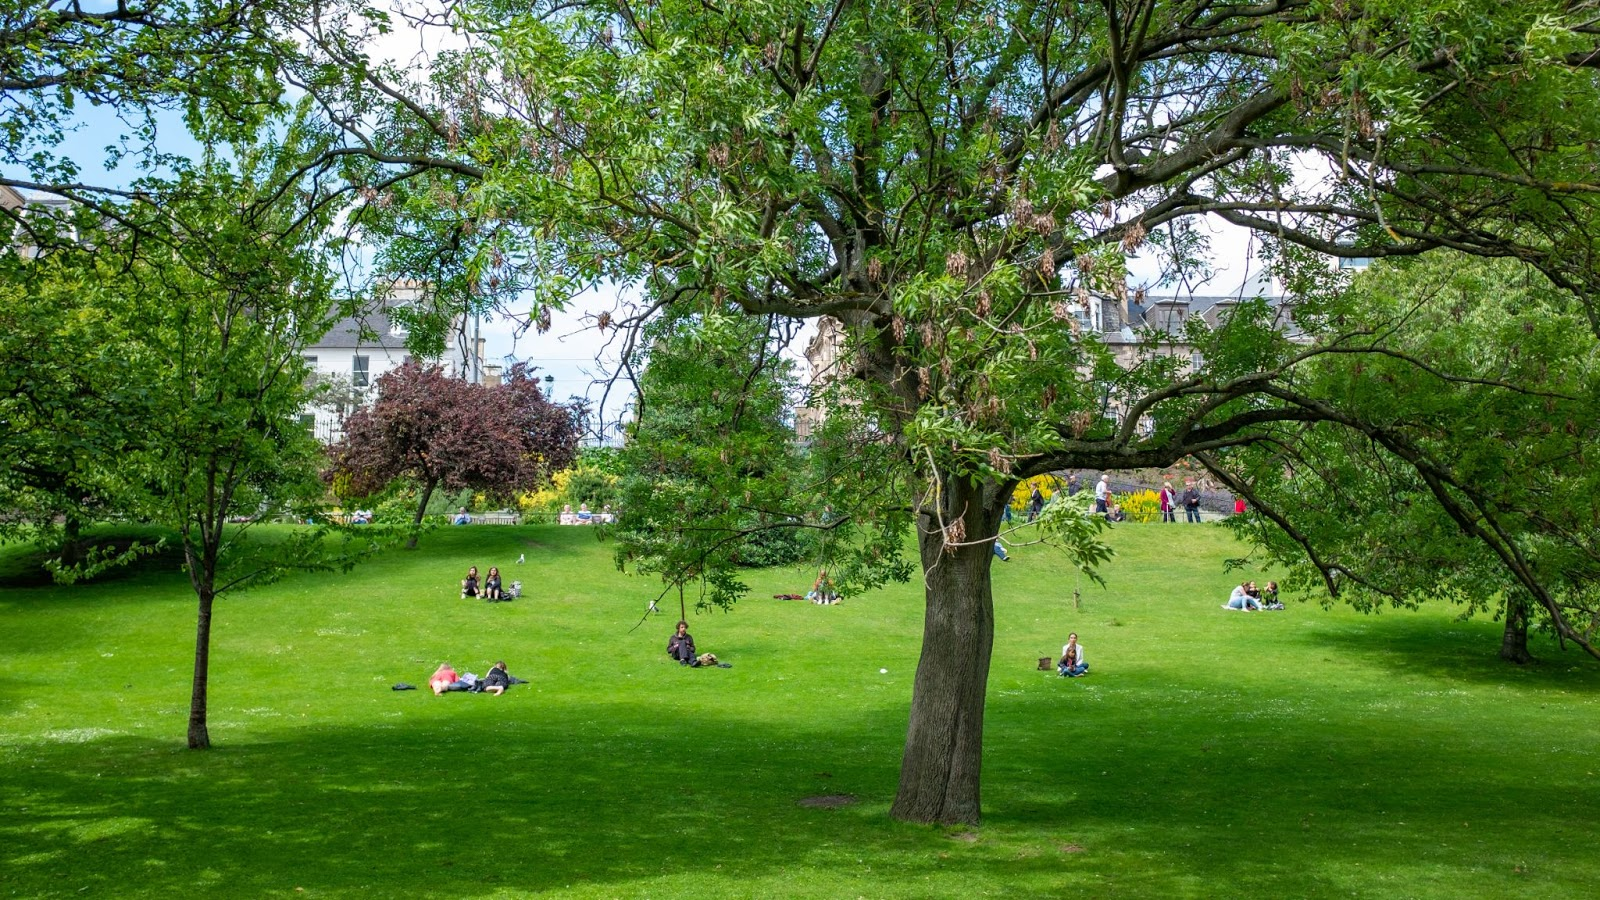 Public parks provide green spaces in urban settings